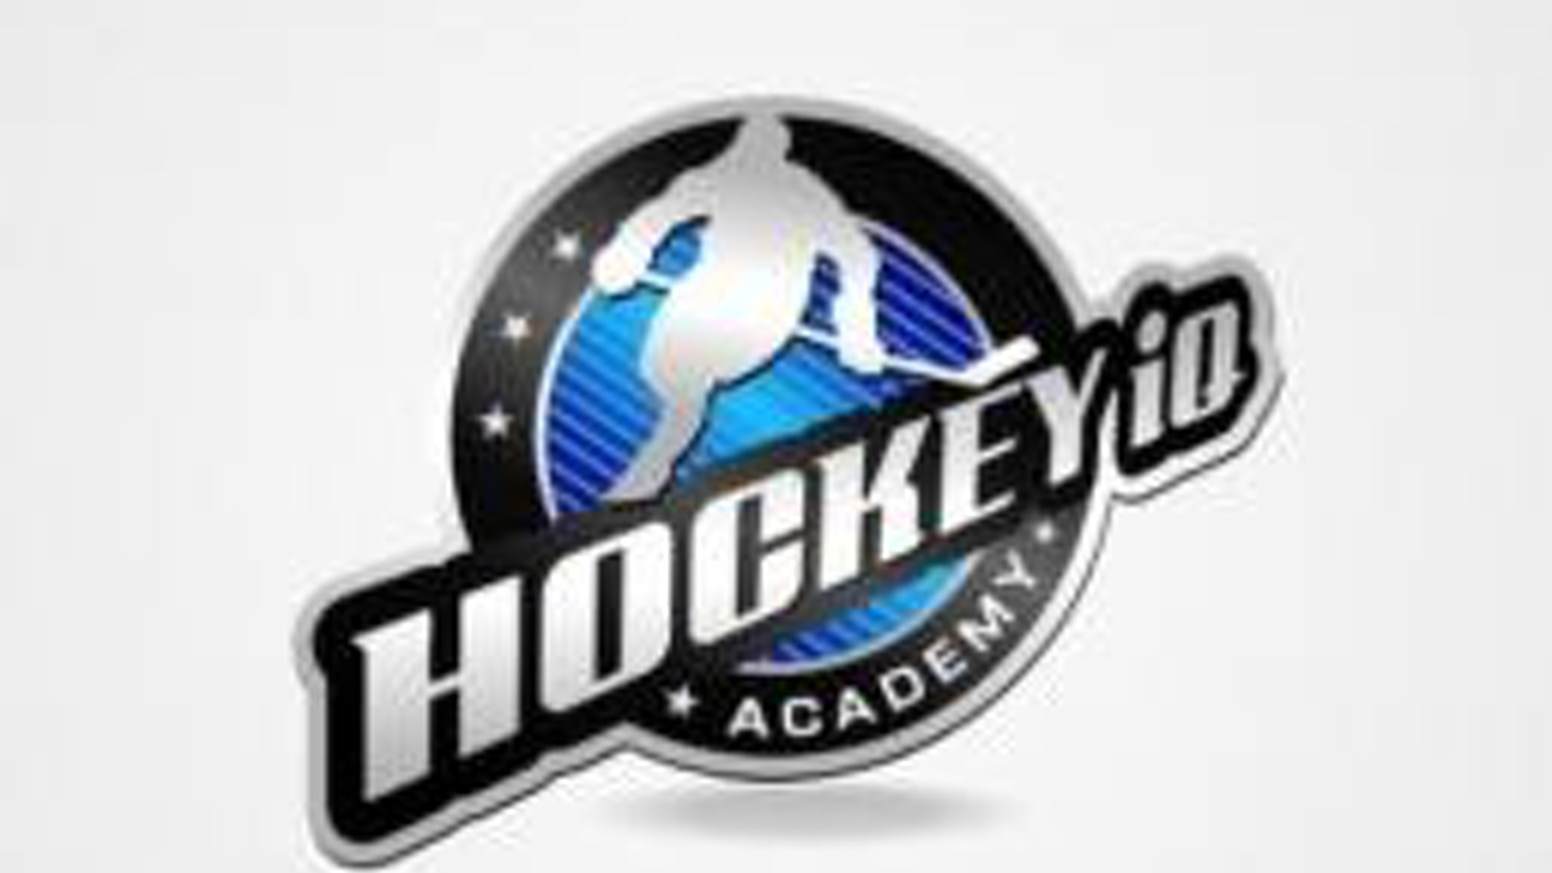 Youth students will increase their Hockey iQ via daily online lessons, weekly quizzes and much more while earning awesome prizes!